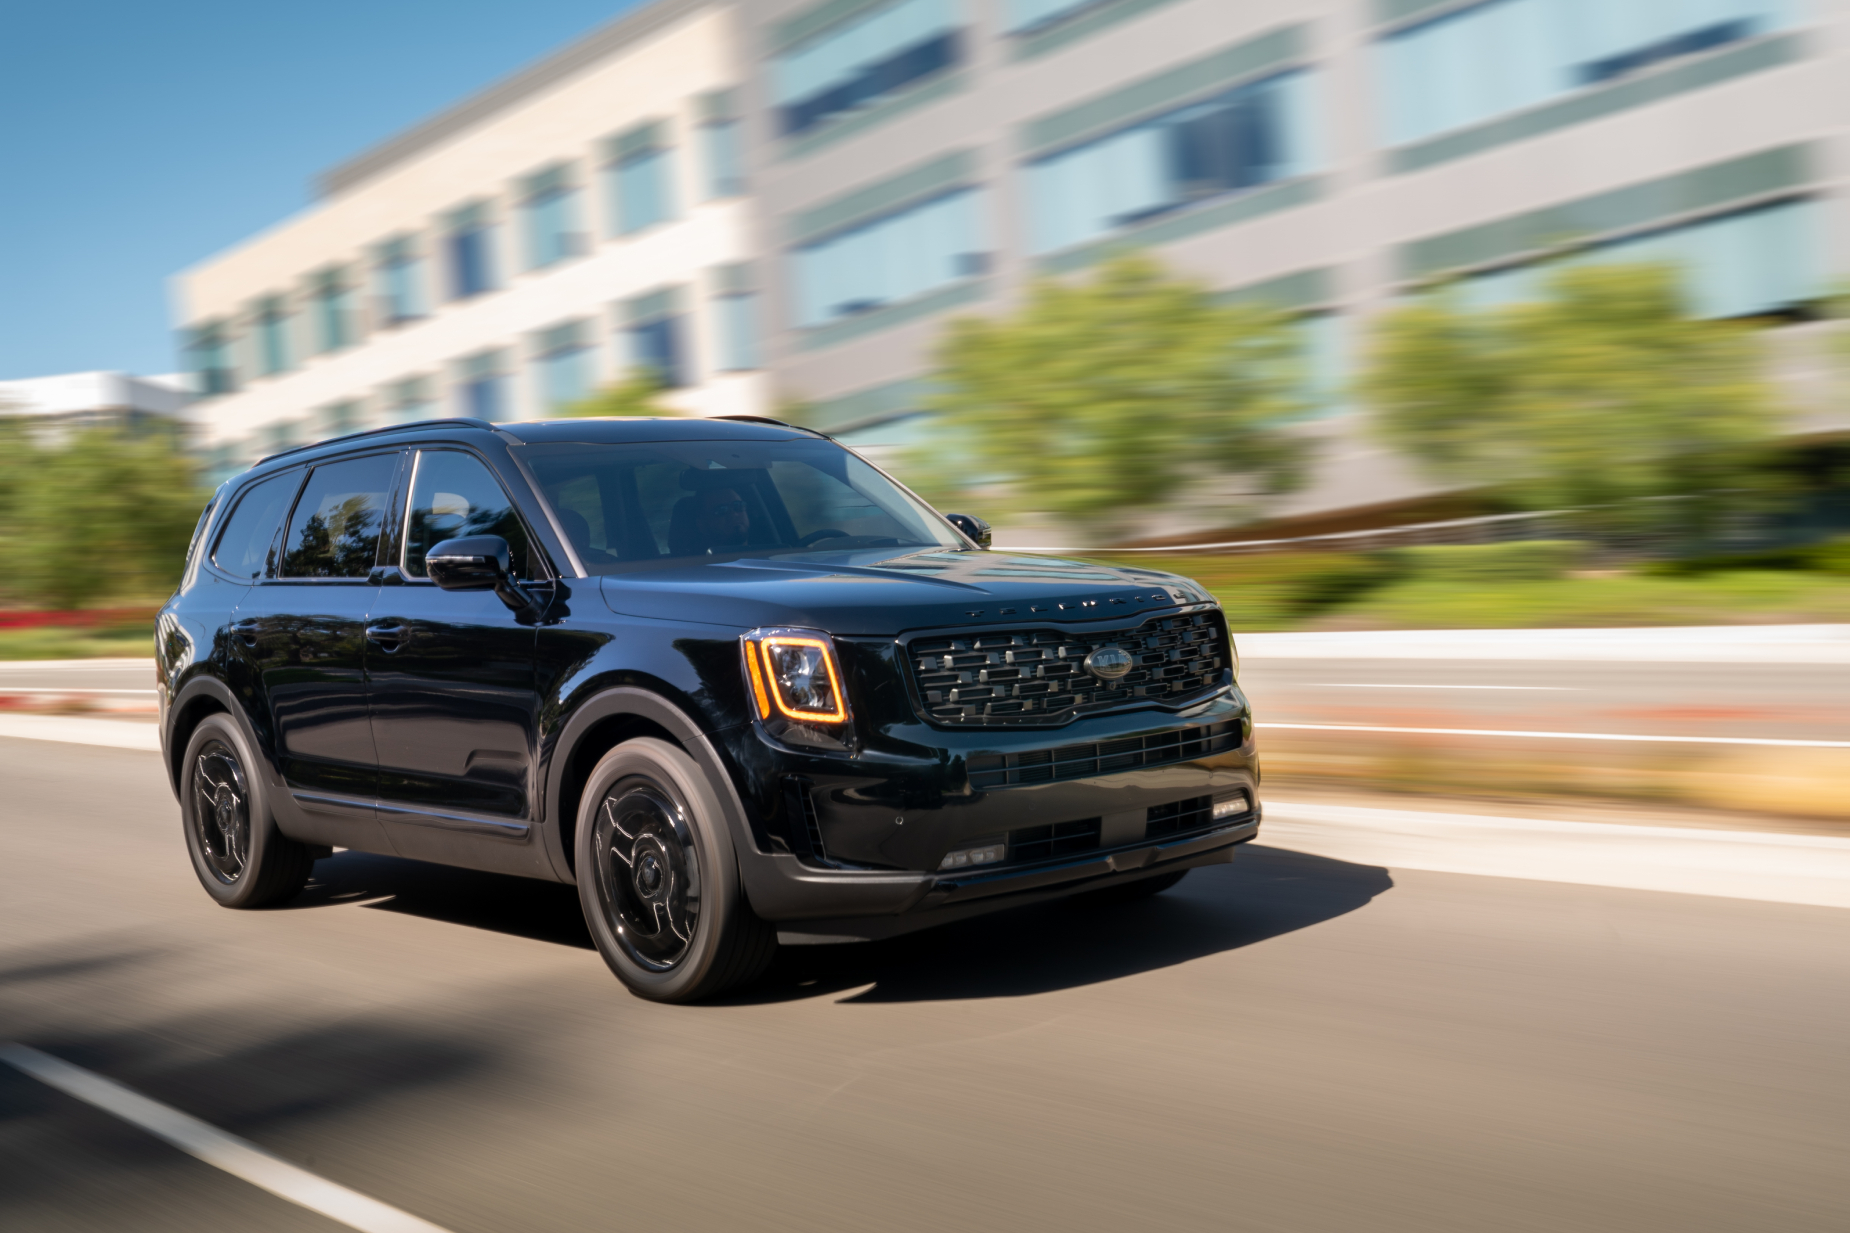 a blacked out 2021 kia telluride SUV driving on the road in the city